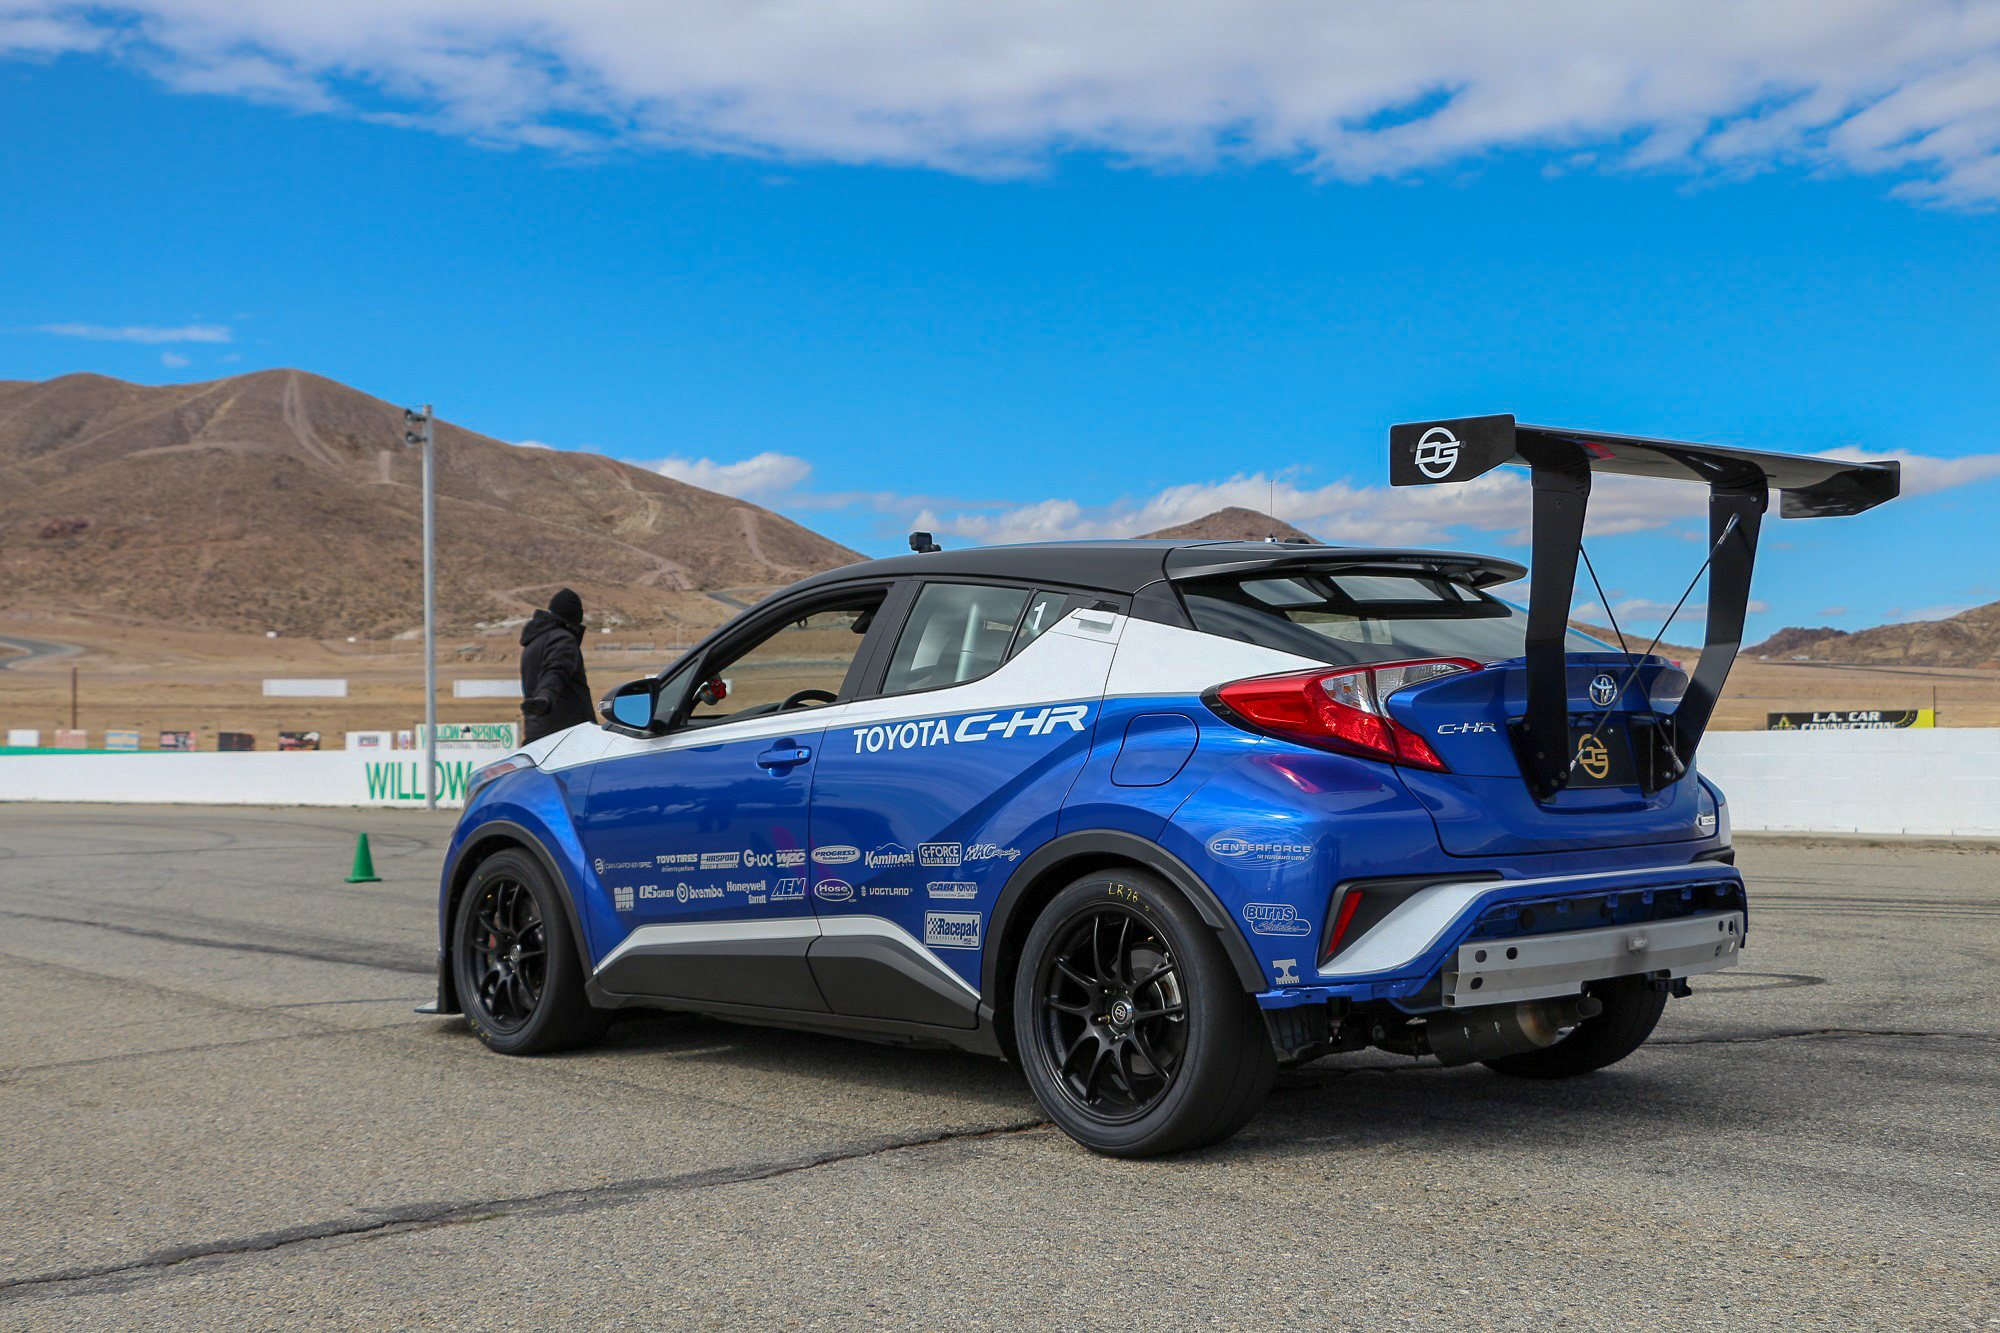 Yotatech.com Toyota C-HR R-Tuned Track Drive Test Review